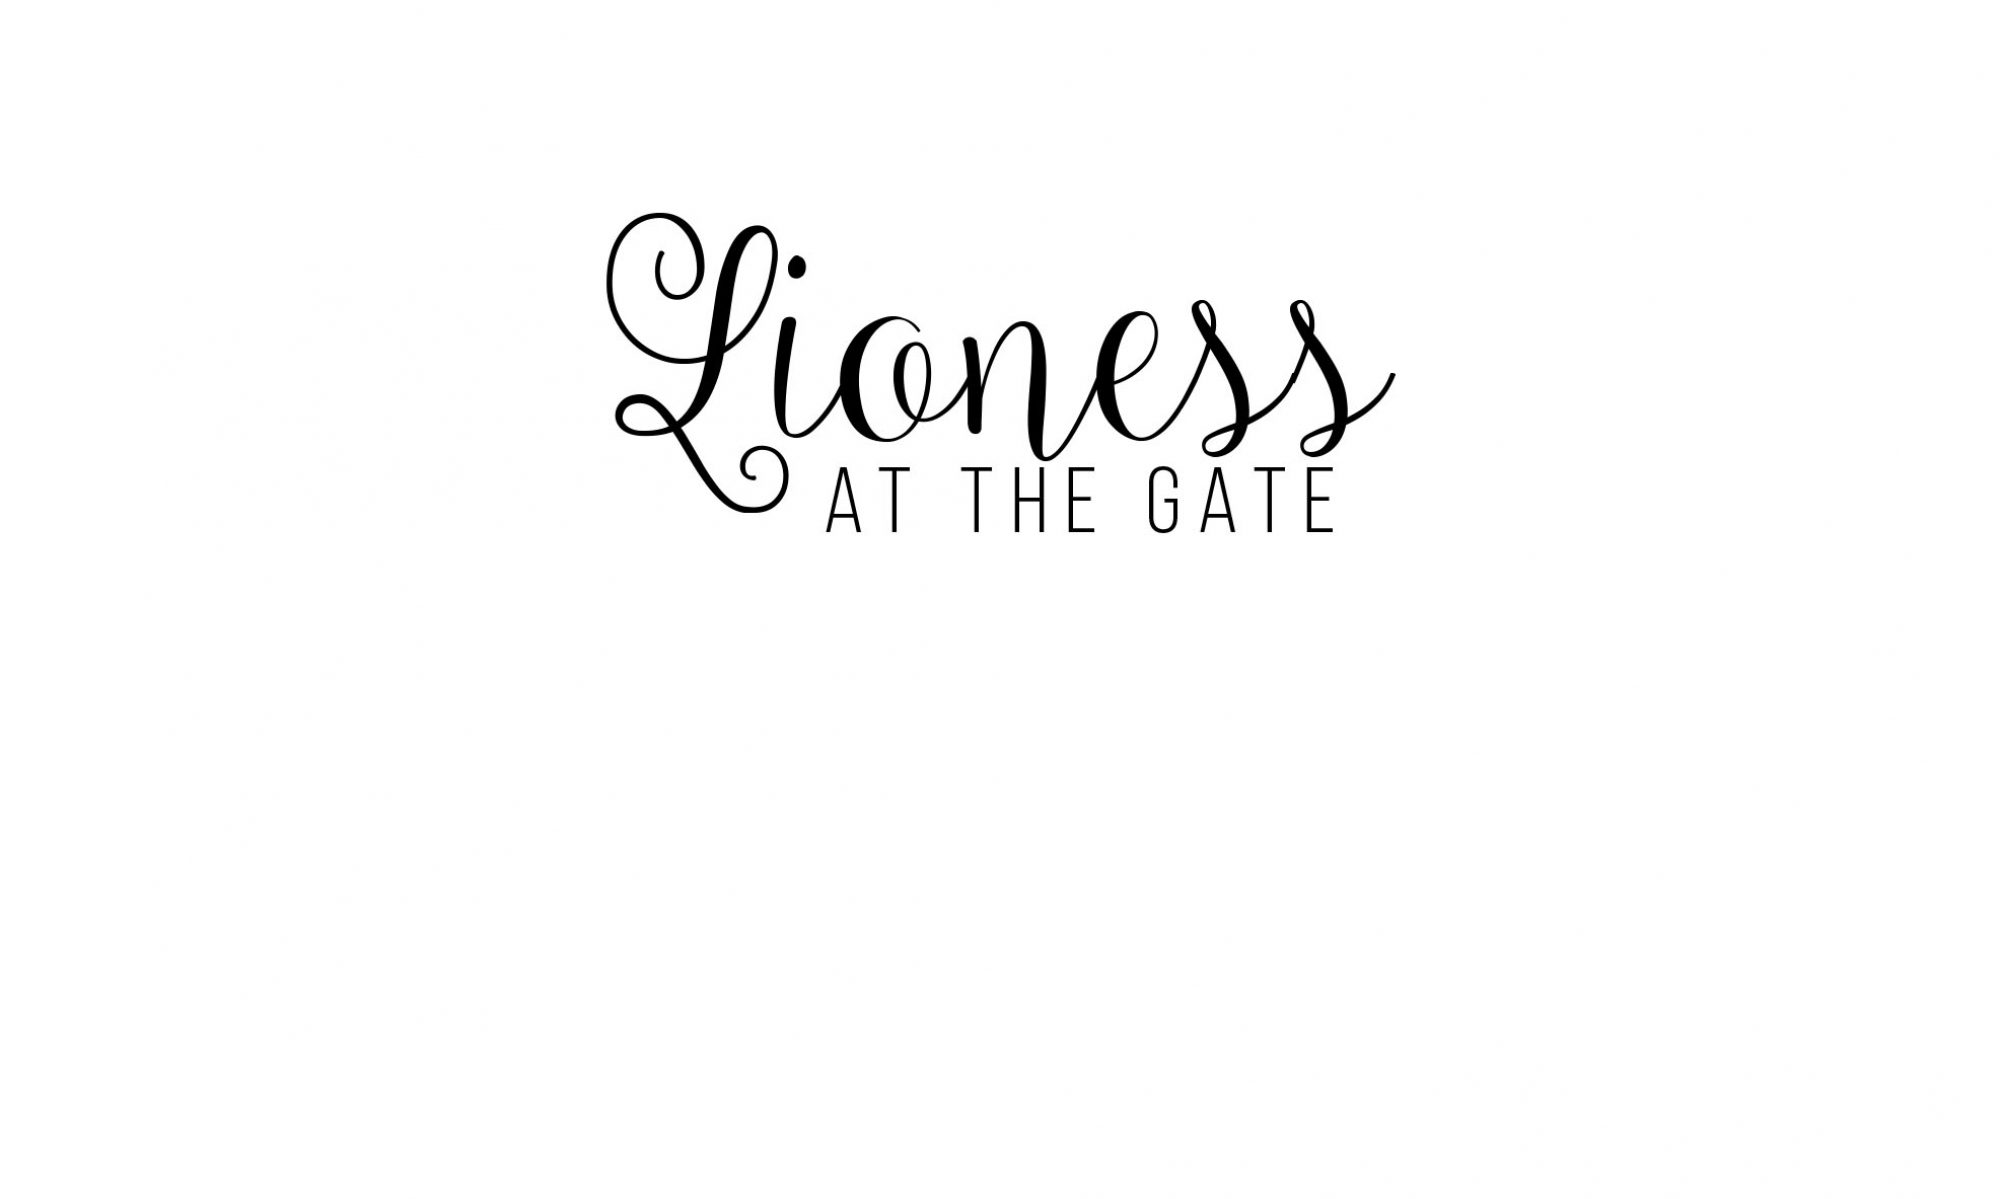 lioness at the gate